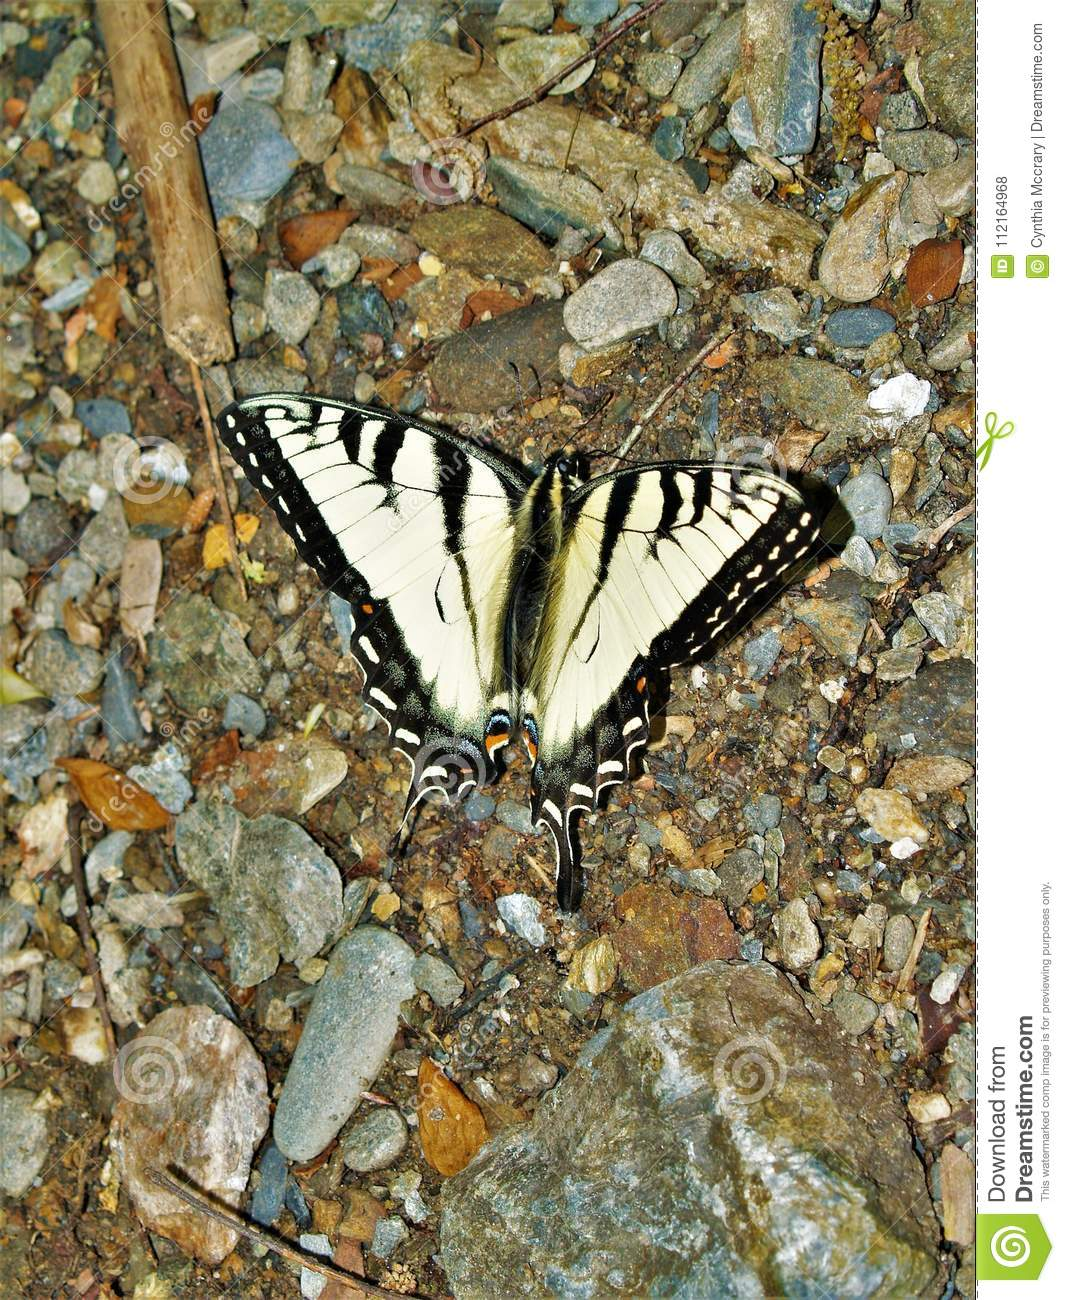 3dece24e4 The eastern tiger swallowtail is a species of swallowtail butterfly native  to eastern North America and is one of the most familiar butterflies in the  ...